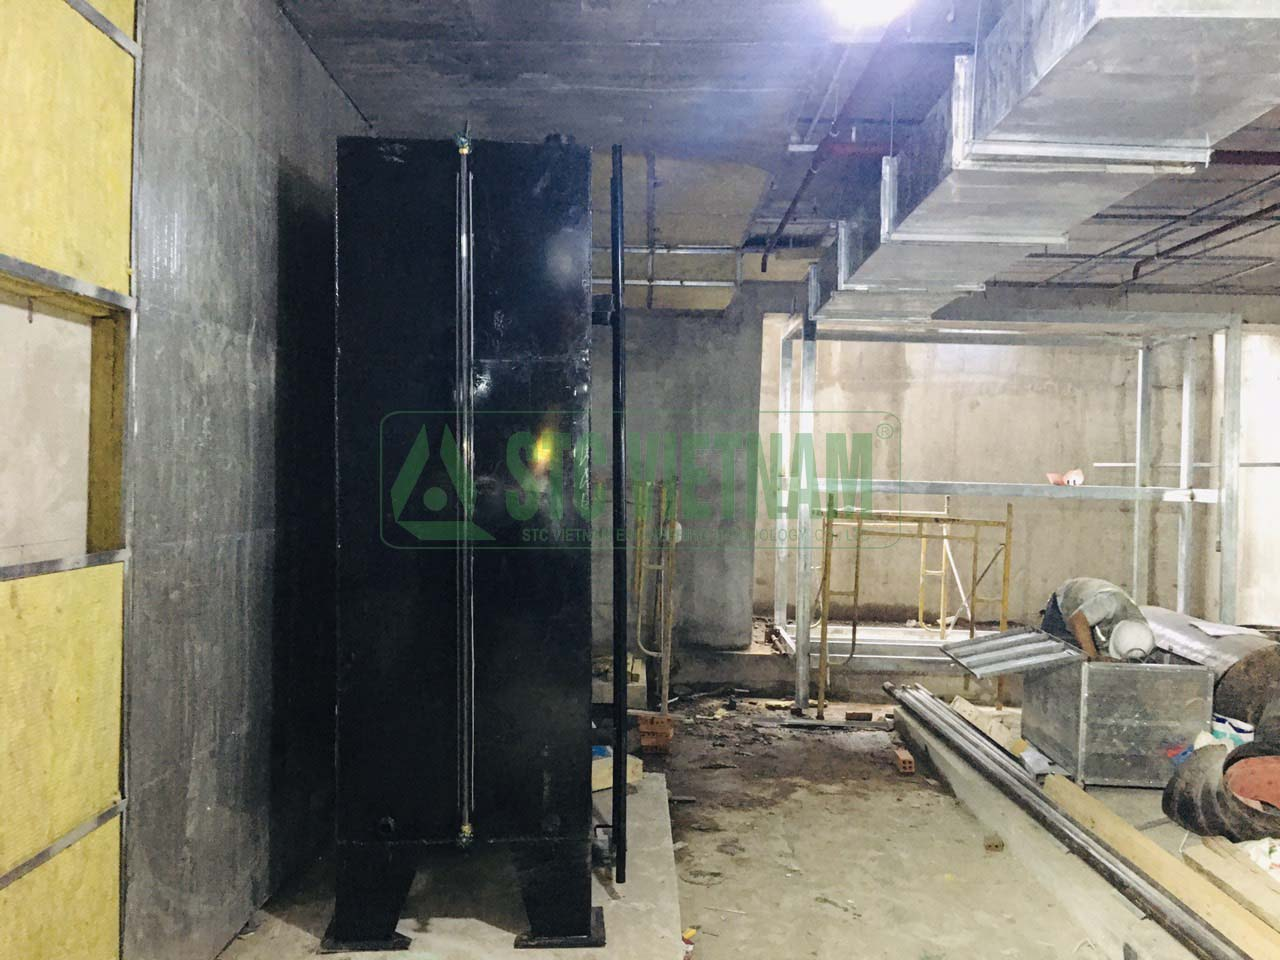 Soundproof room for generator